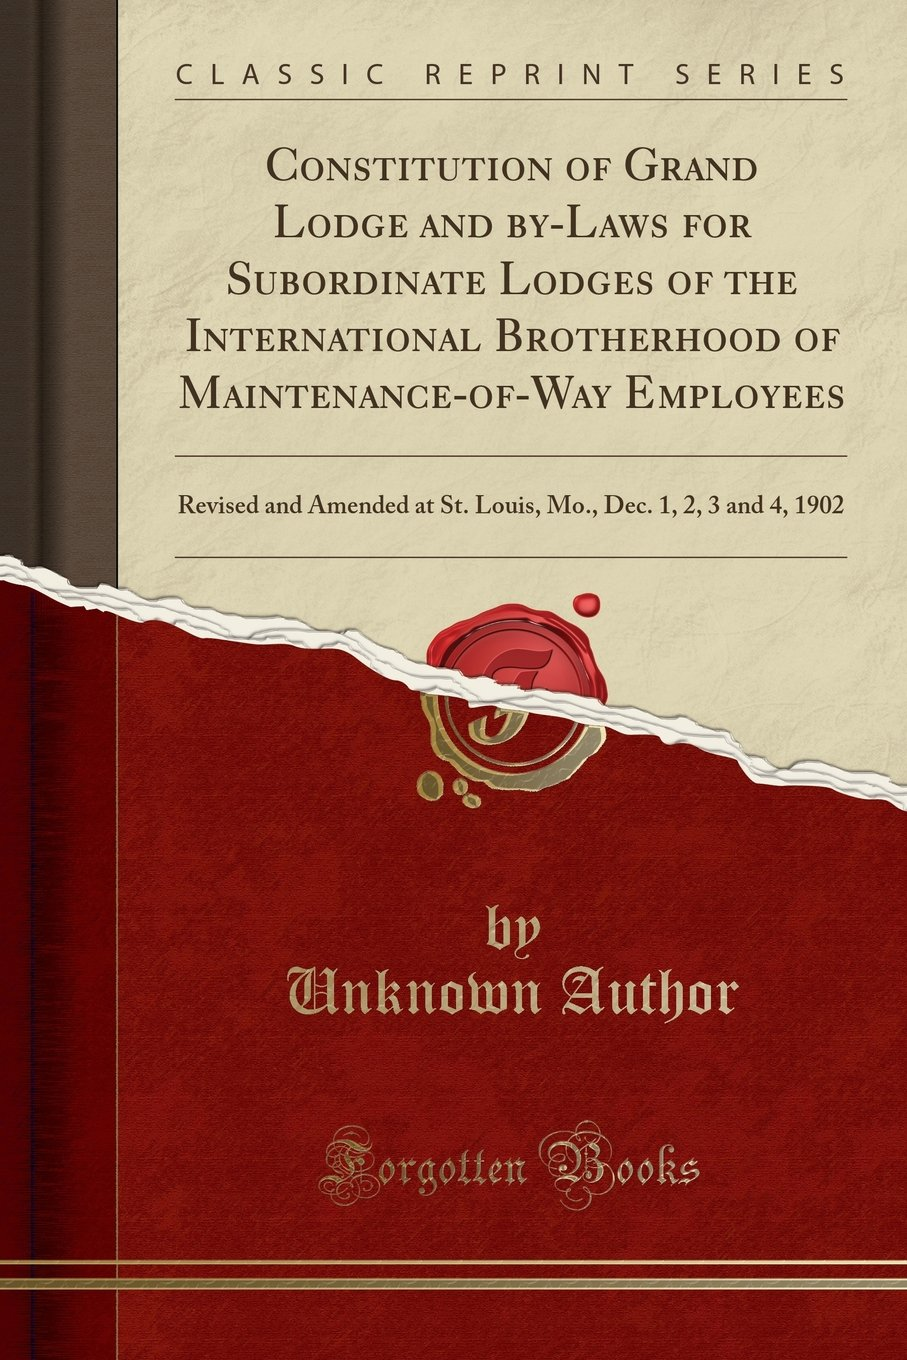 Constitution of Grand Lodge and by-Laws for Subordinate Lodges of the International Brotherhood of Maintenance-of-Way Employees: Revised and Amended ... Dec. 1, 2, 3 and 4, 1902 (Classic Reprint)